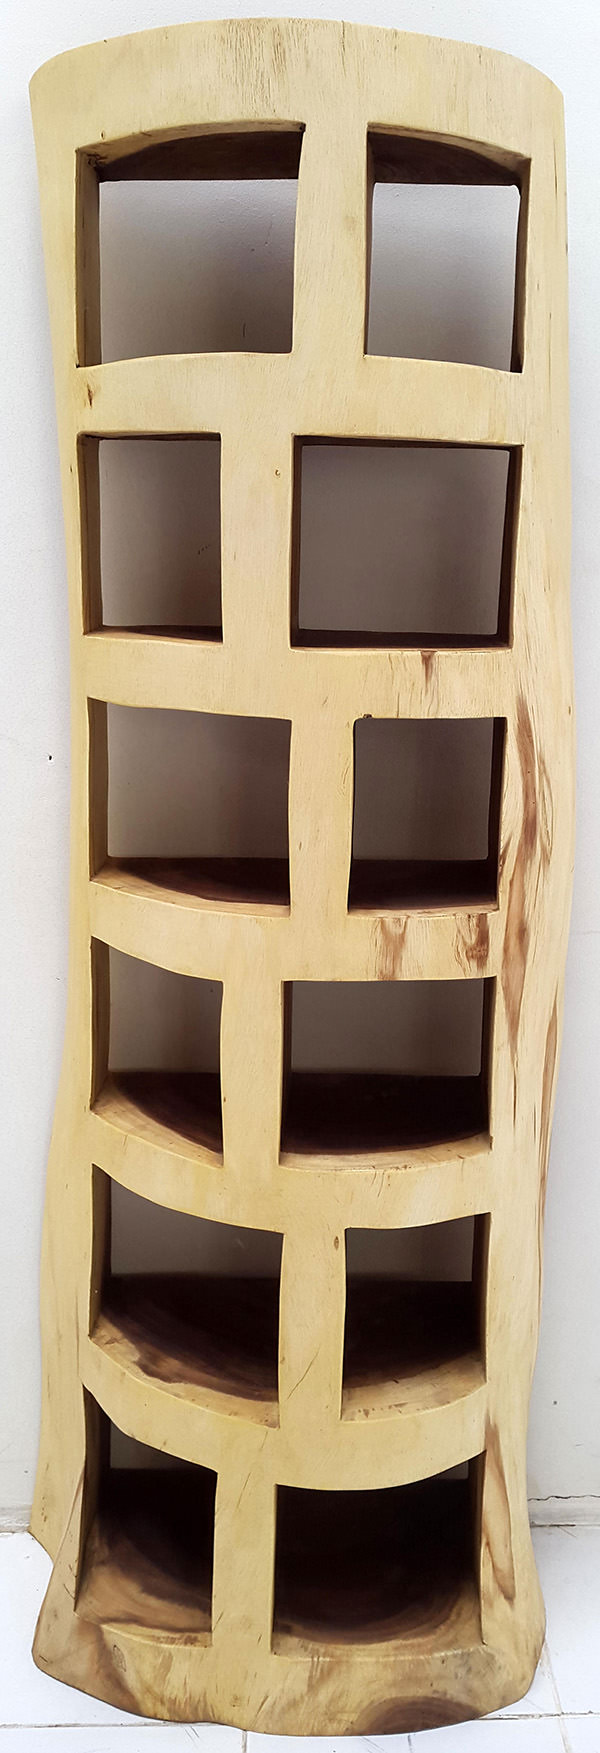 suar bookcase with organic shapes